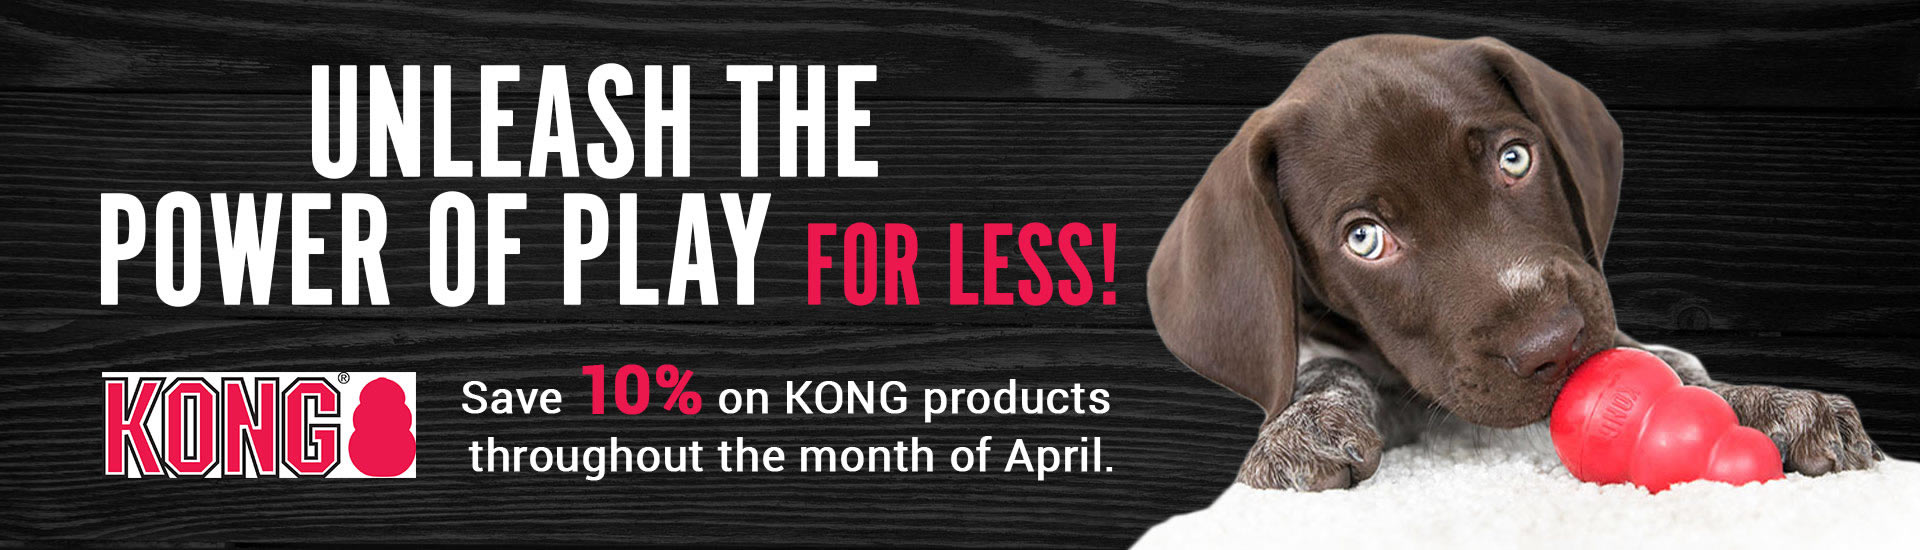 Save 10% on KONG products throughout the month of April.